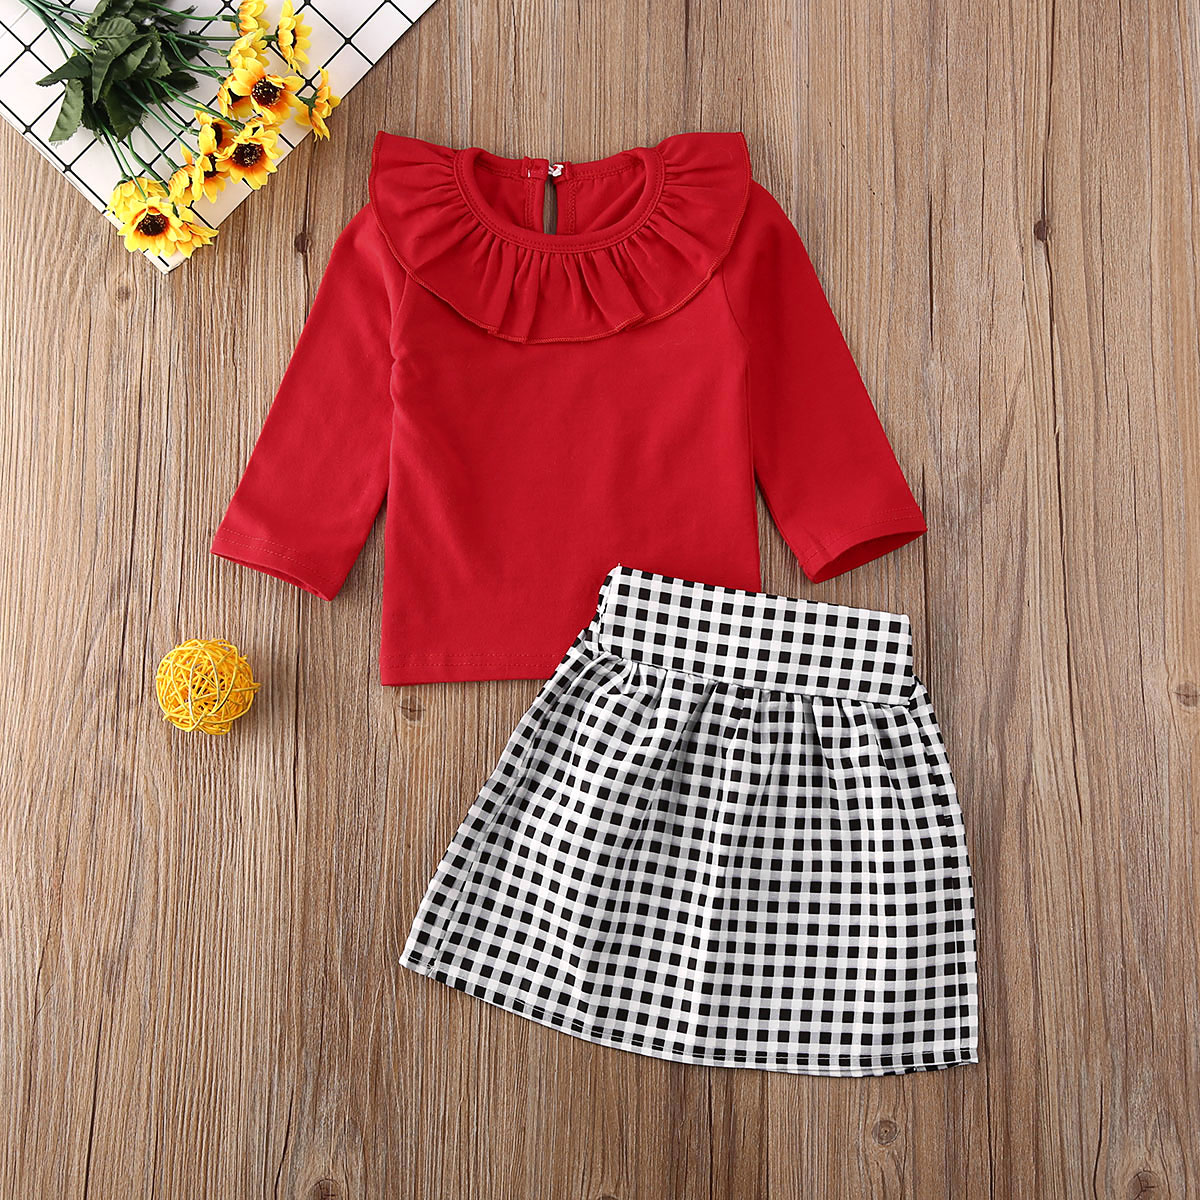 Pudcoco Newest Fashion Toddler Baby Girl Clothes Solid Color Ruffle Long Sleeve Tops Plaids Mini Skirt 2Pcs Outfits Clothes Set